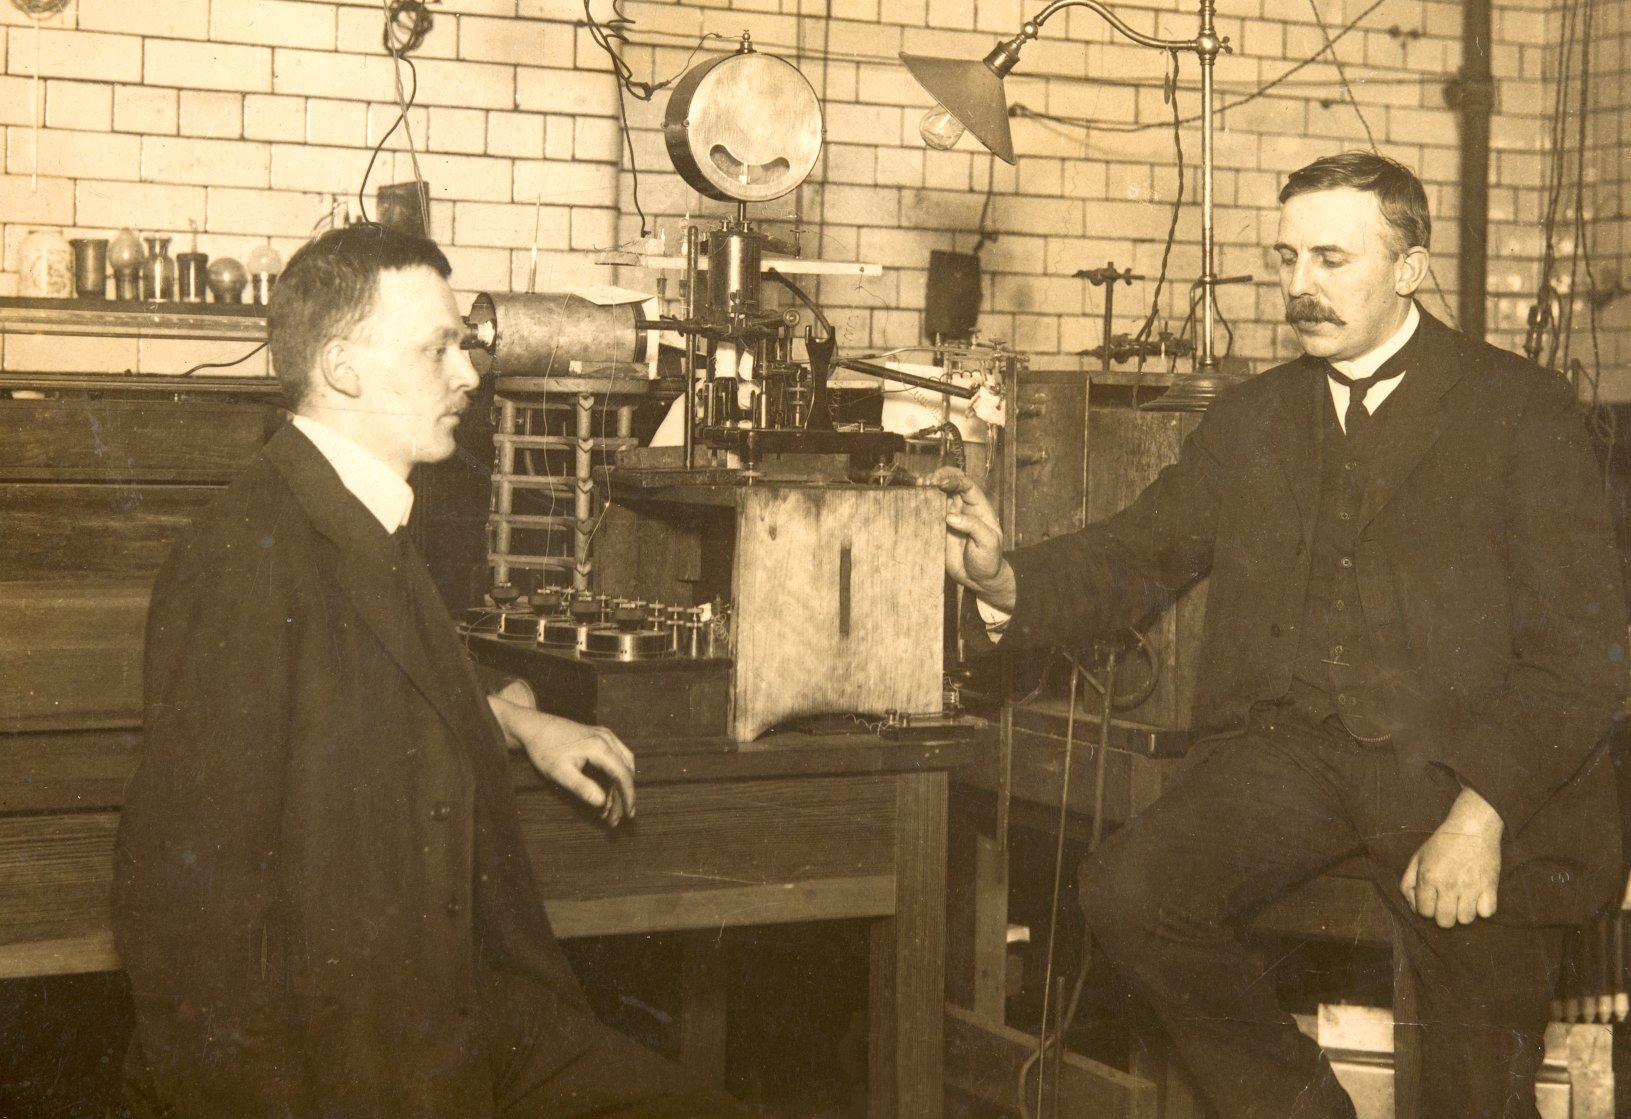 Ernest Rutherford and Hans Geiger (of Geiger tube fame) in the Manchester physics laboratory, 1912.